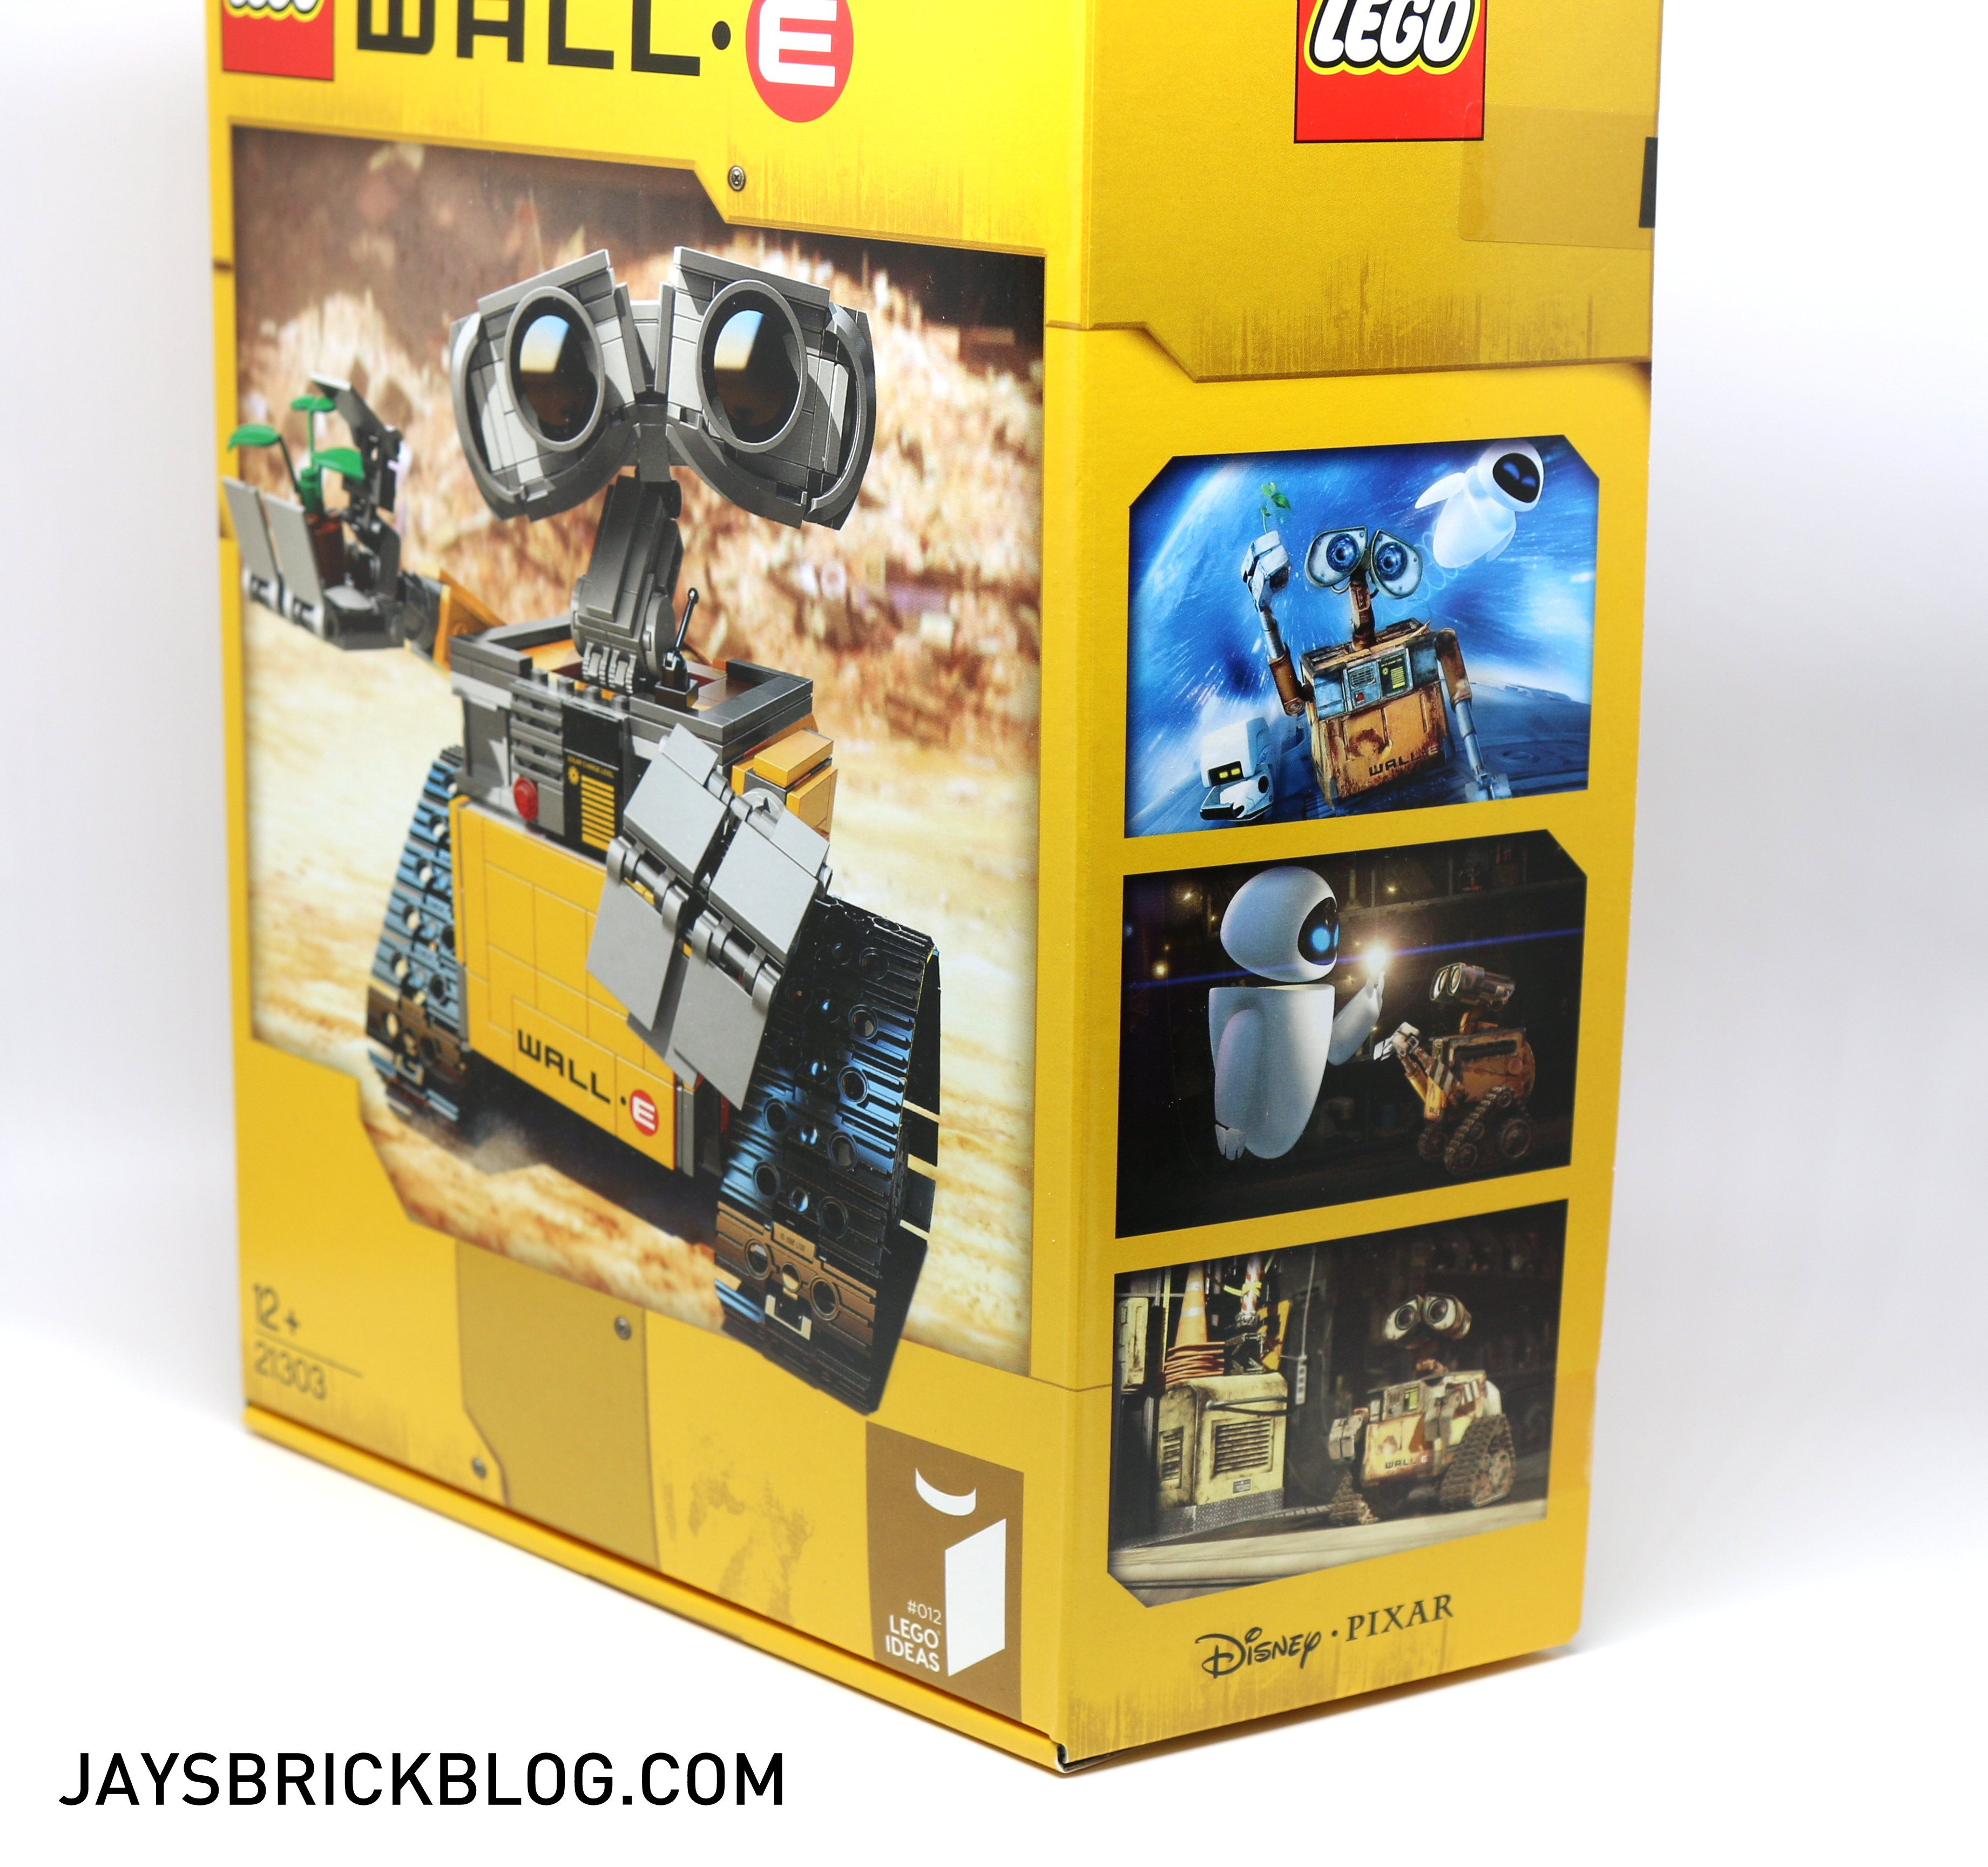 Enchanting Wall E Decorations Composition - Wall Art Collections ...